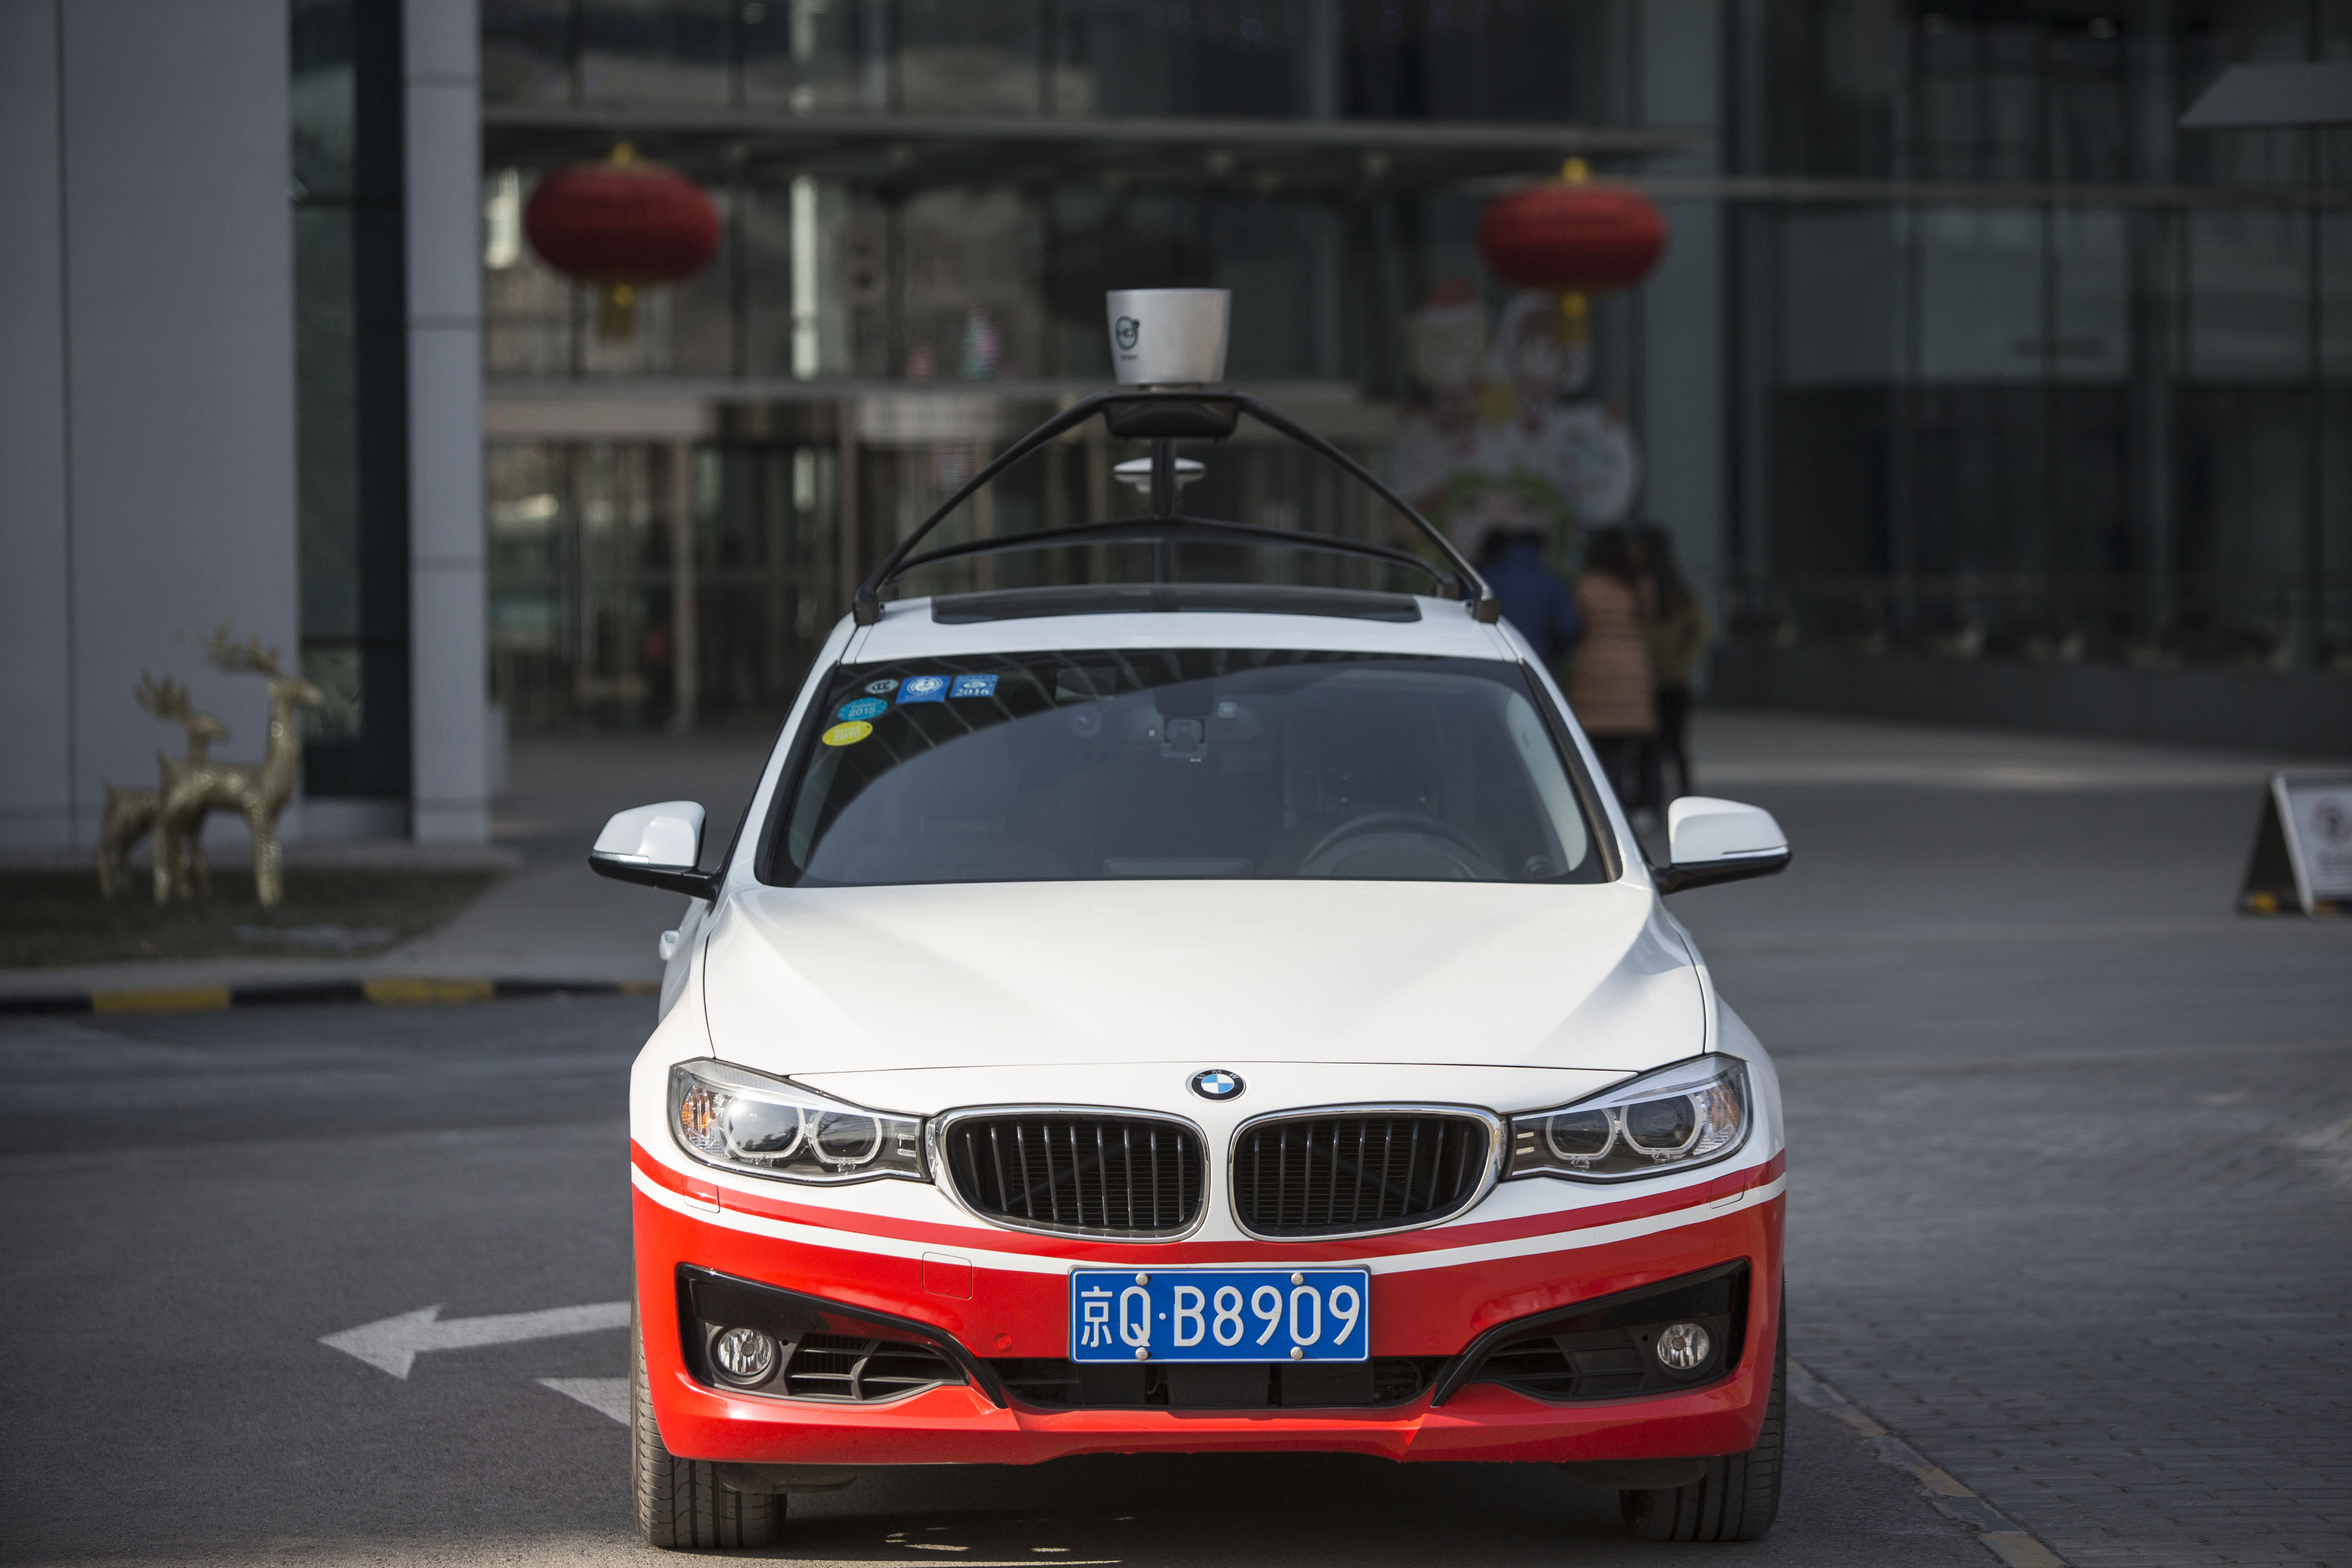 Baidu Wants to Bring Self-Driving Cars to the Masses by 2021